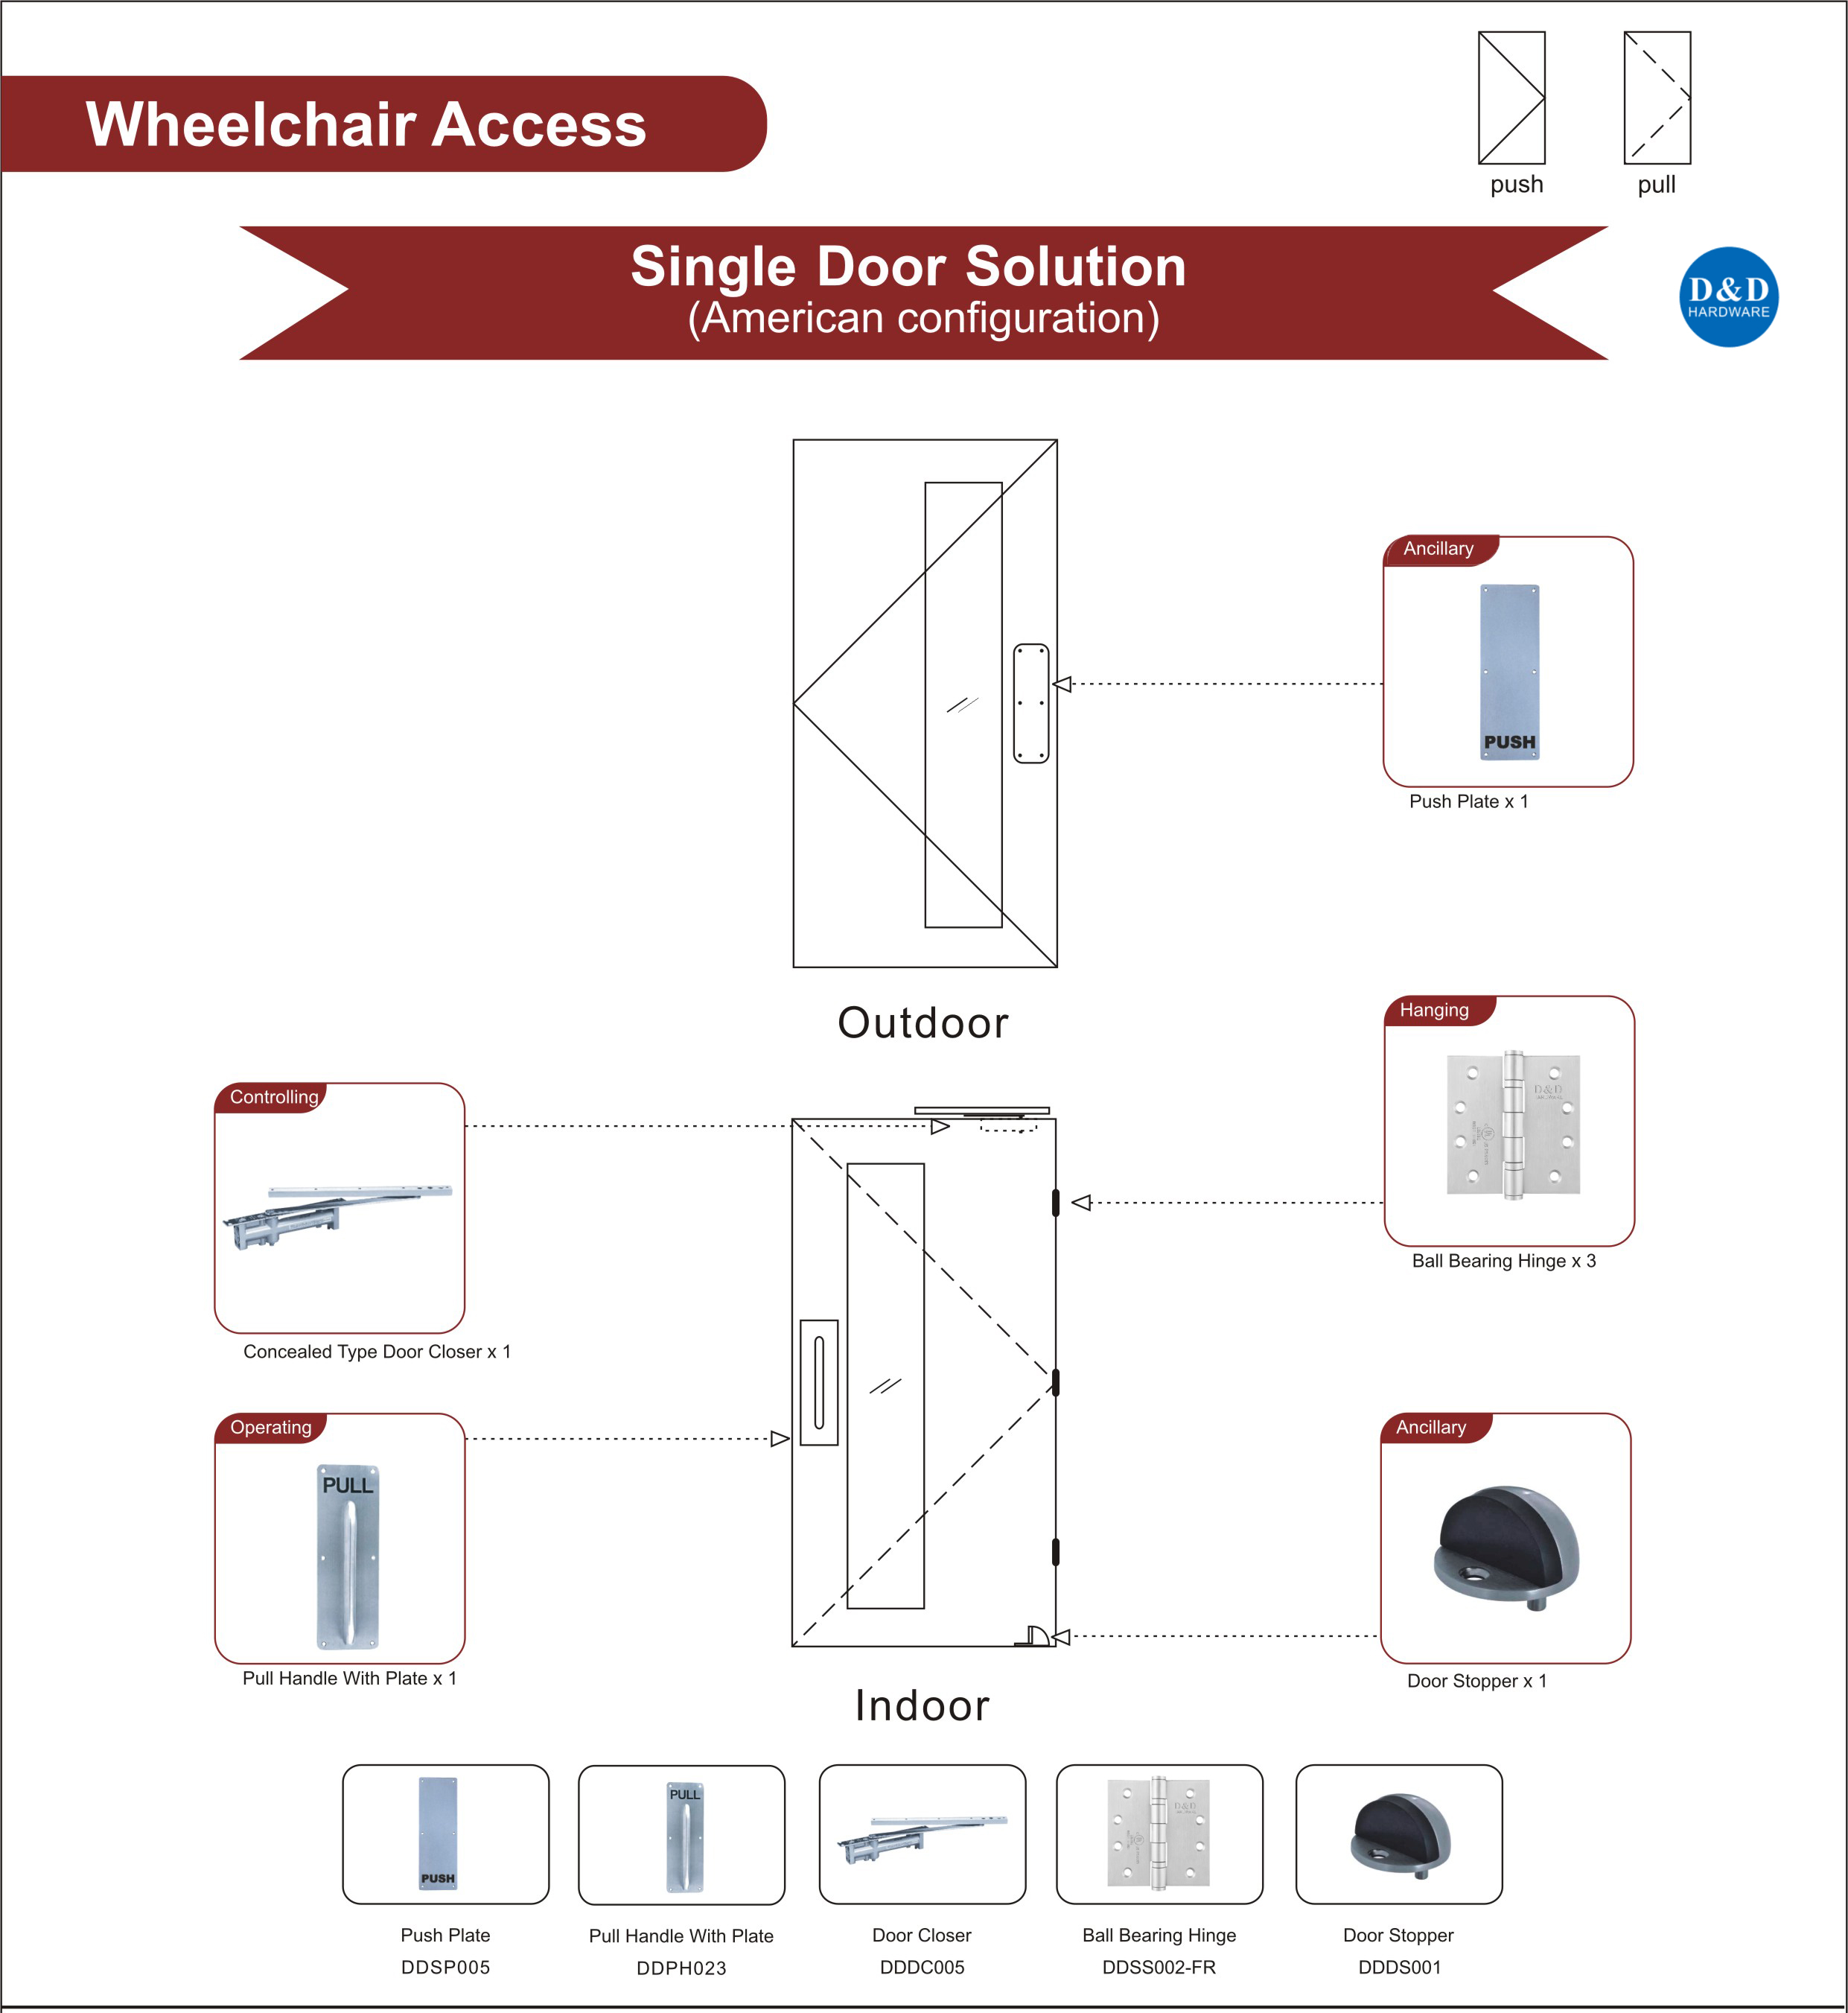 Fire Rated Wooden Door Ironmongery For Wheelchair Access Single Door